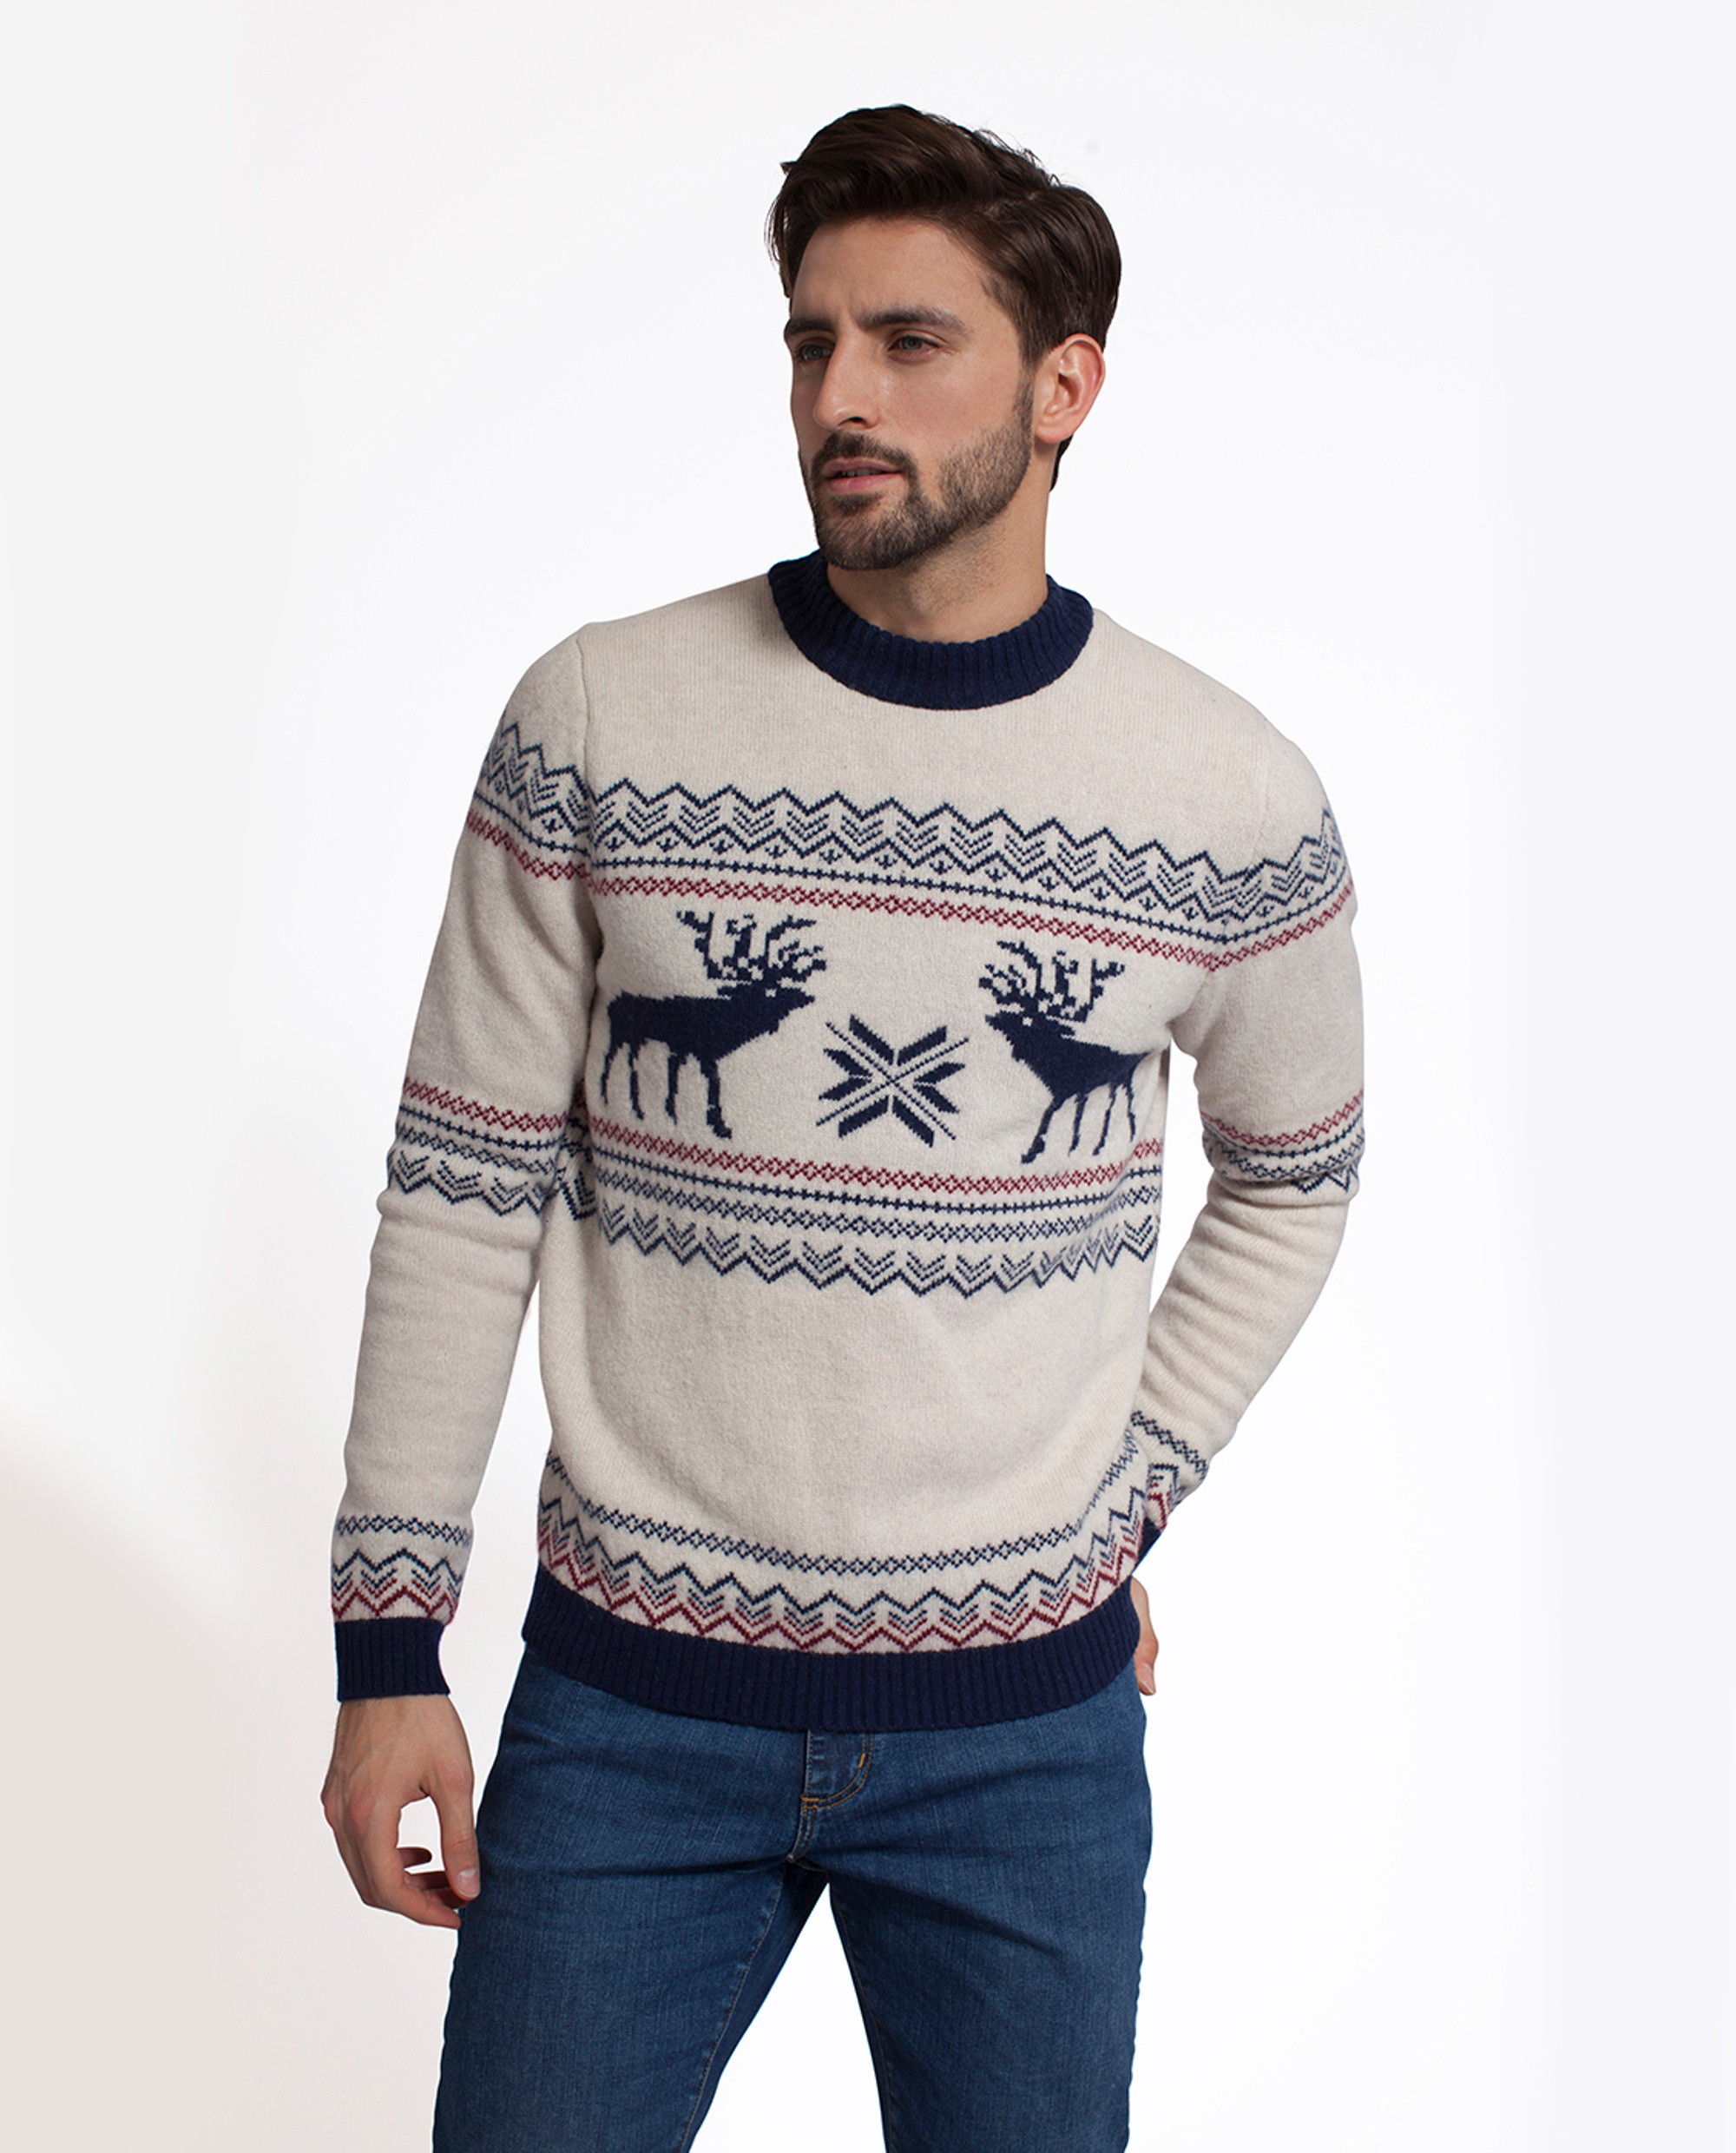 Jim Holiday Sweater, Shell White